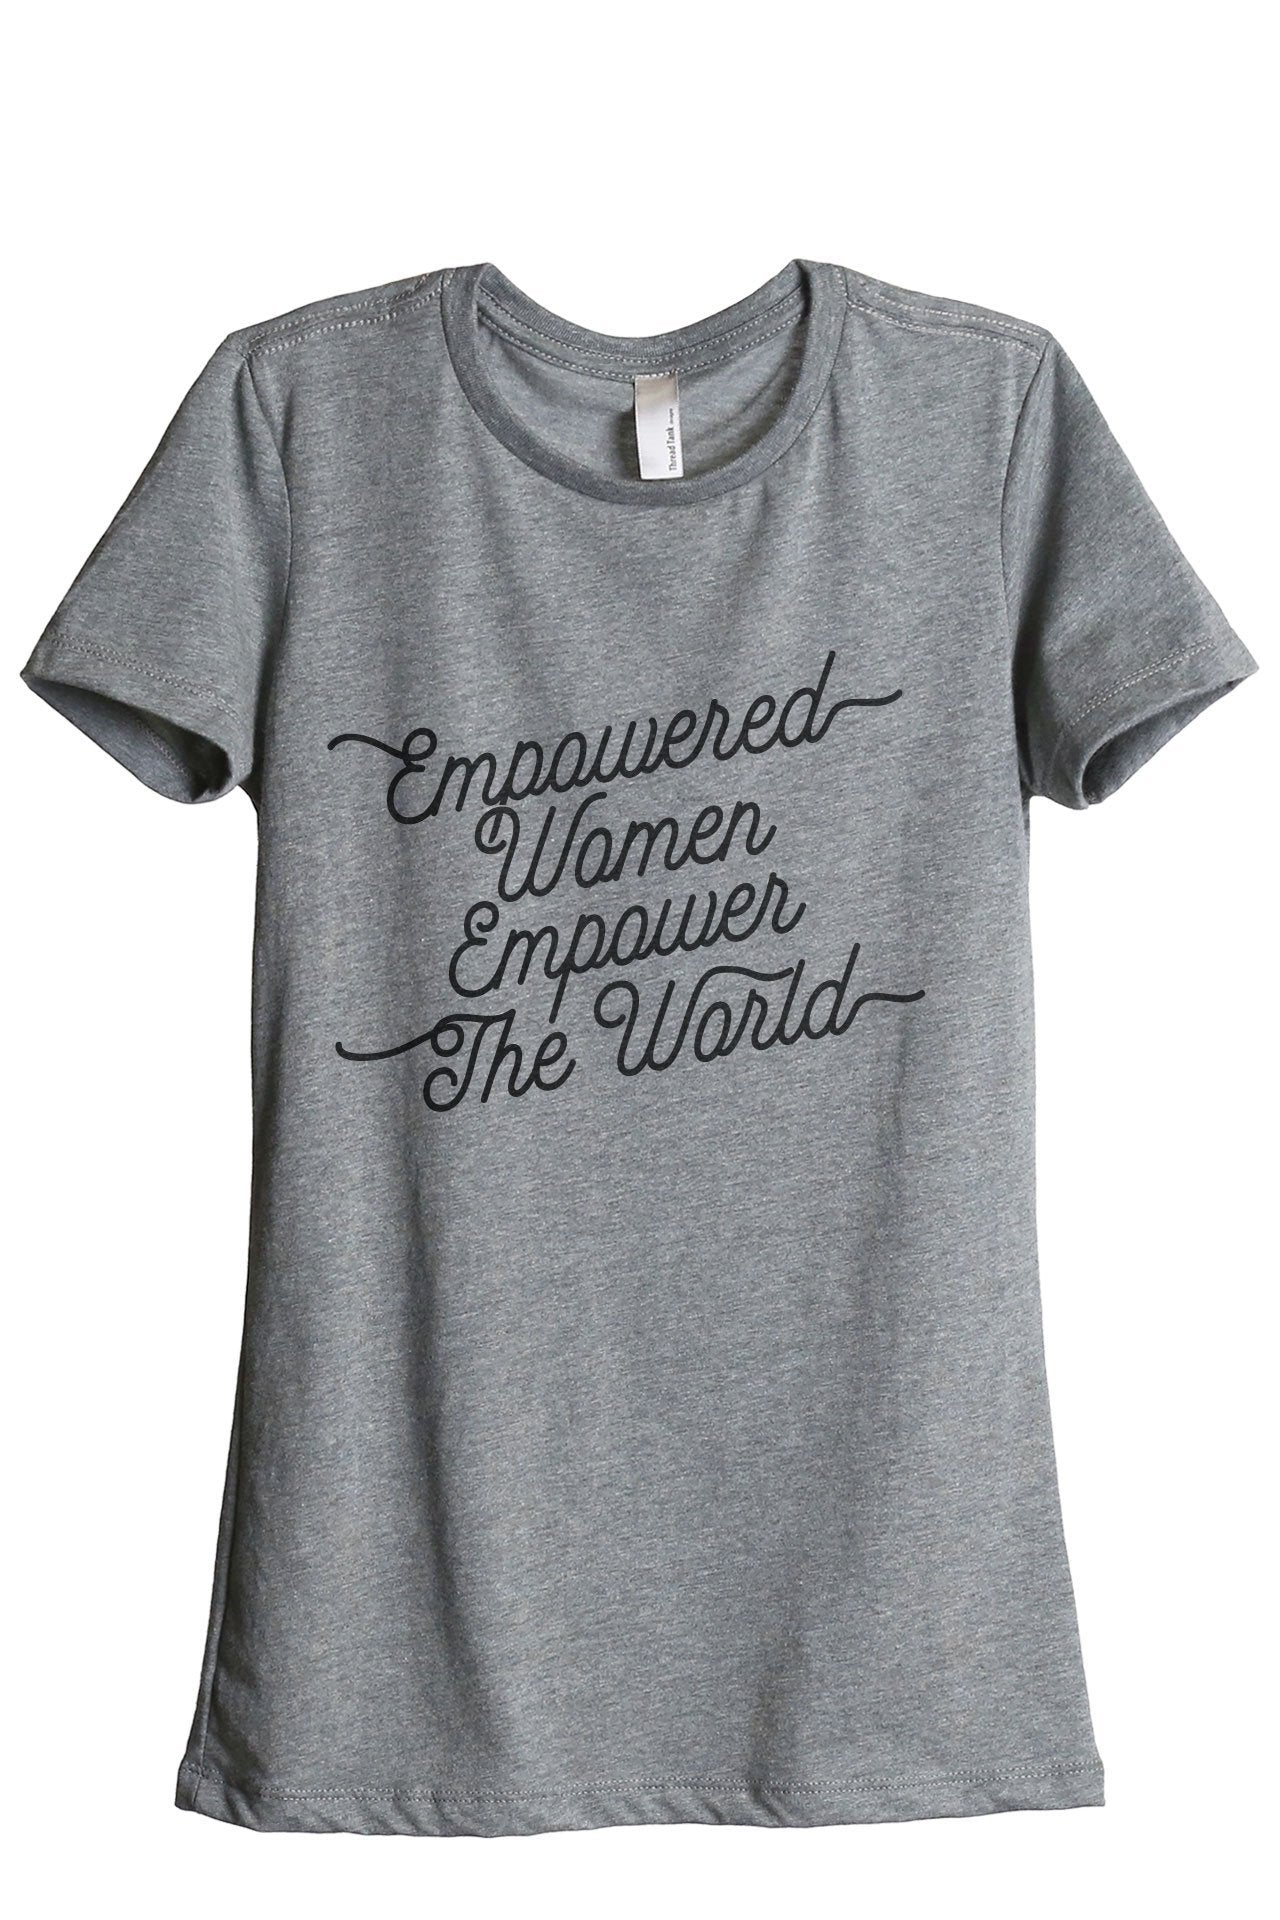 Empowered Women Empower The World Women's Relaxed Crewneck T-Shirt Top Tee Heather Grey